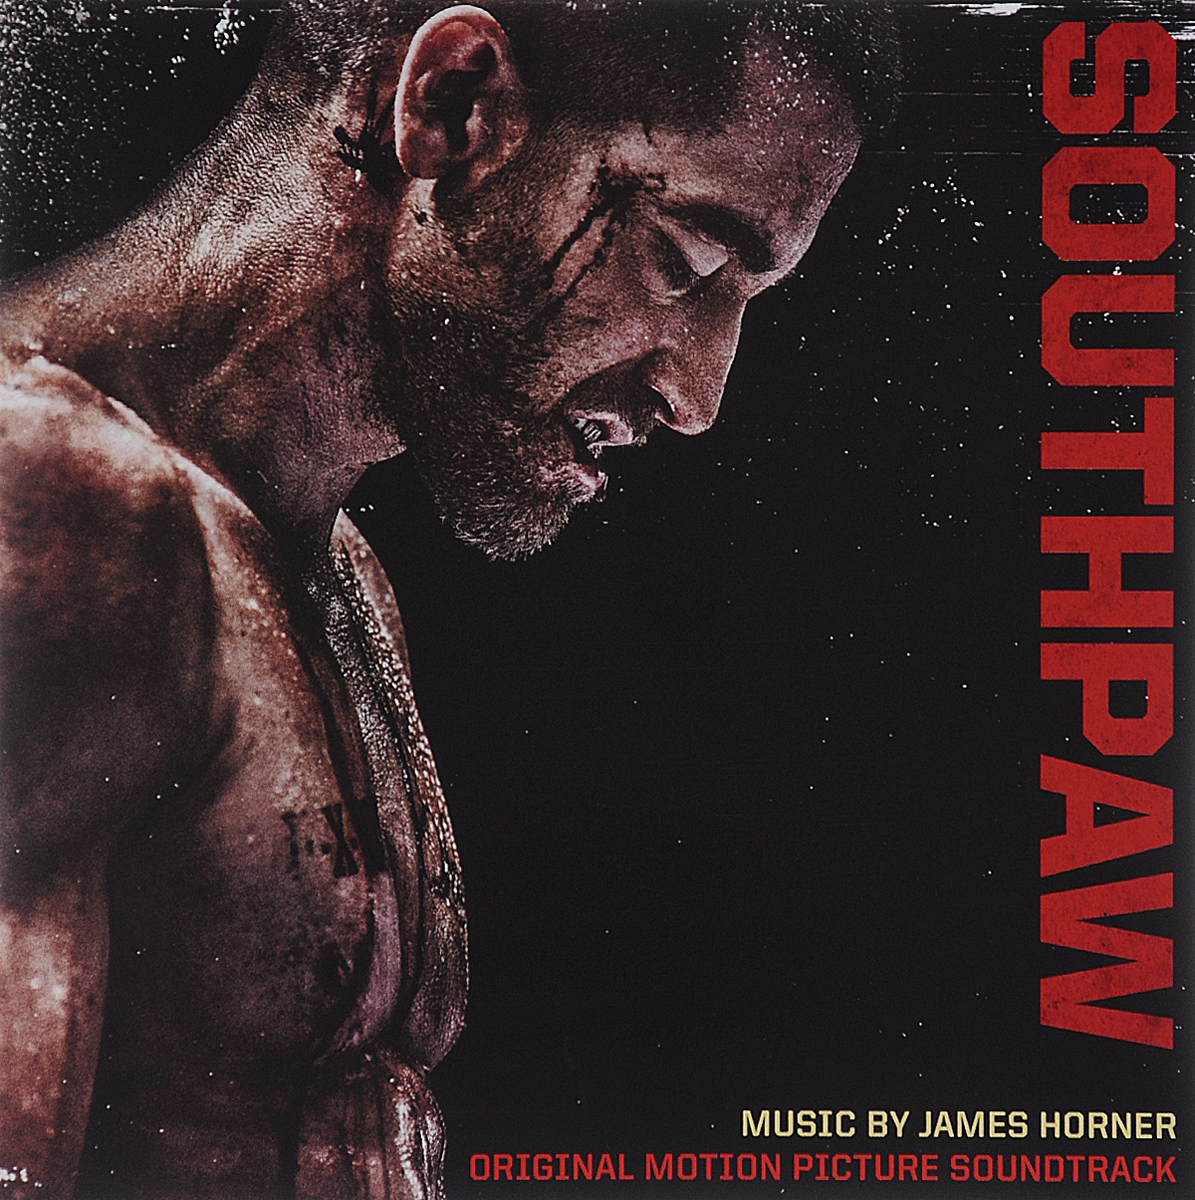 Southpaw. Original Motion Picture Soundtrack. Music By James Horner whiplash original motion picture soundtrack